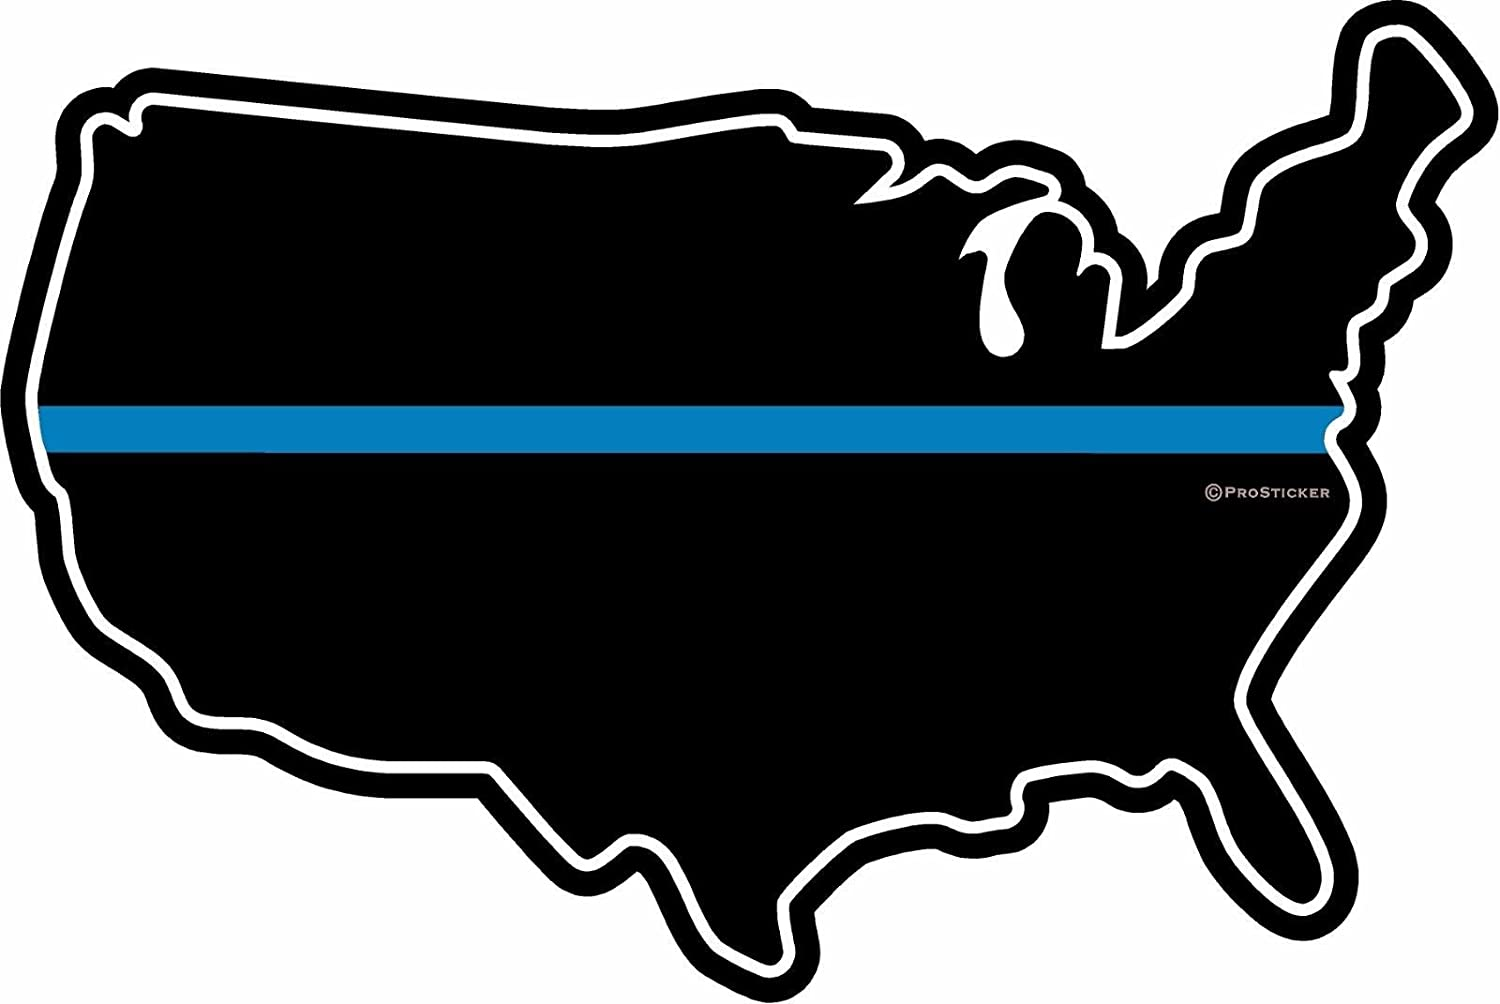 "ProSticker 1100 One 4/"" Support Our Police Blue Line Shield Eagle Decal"